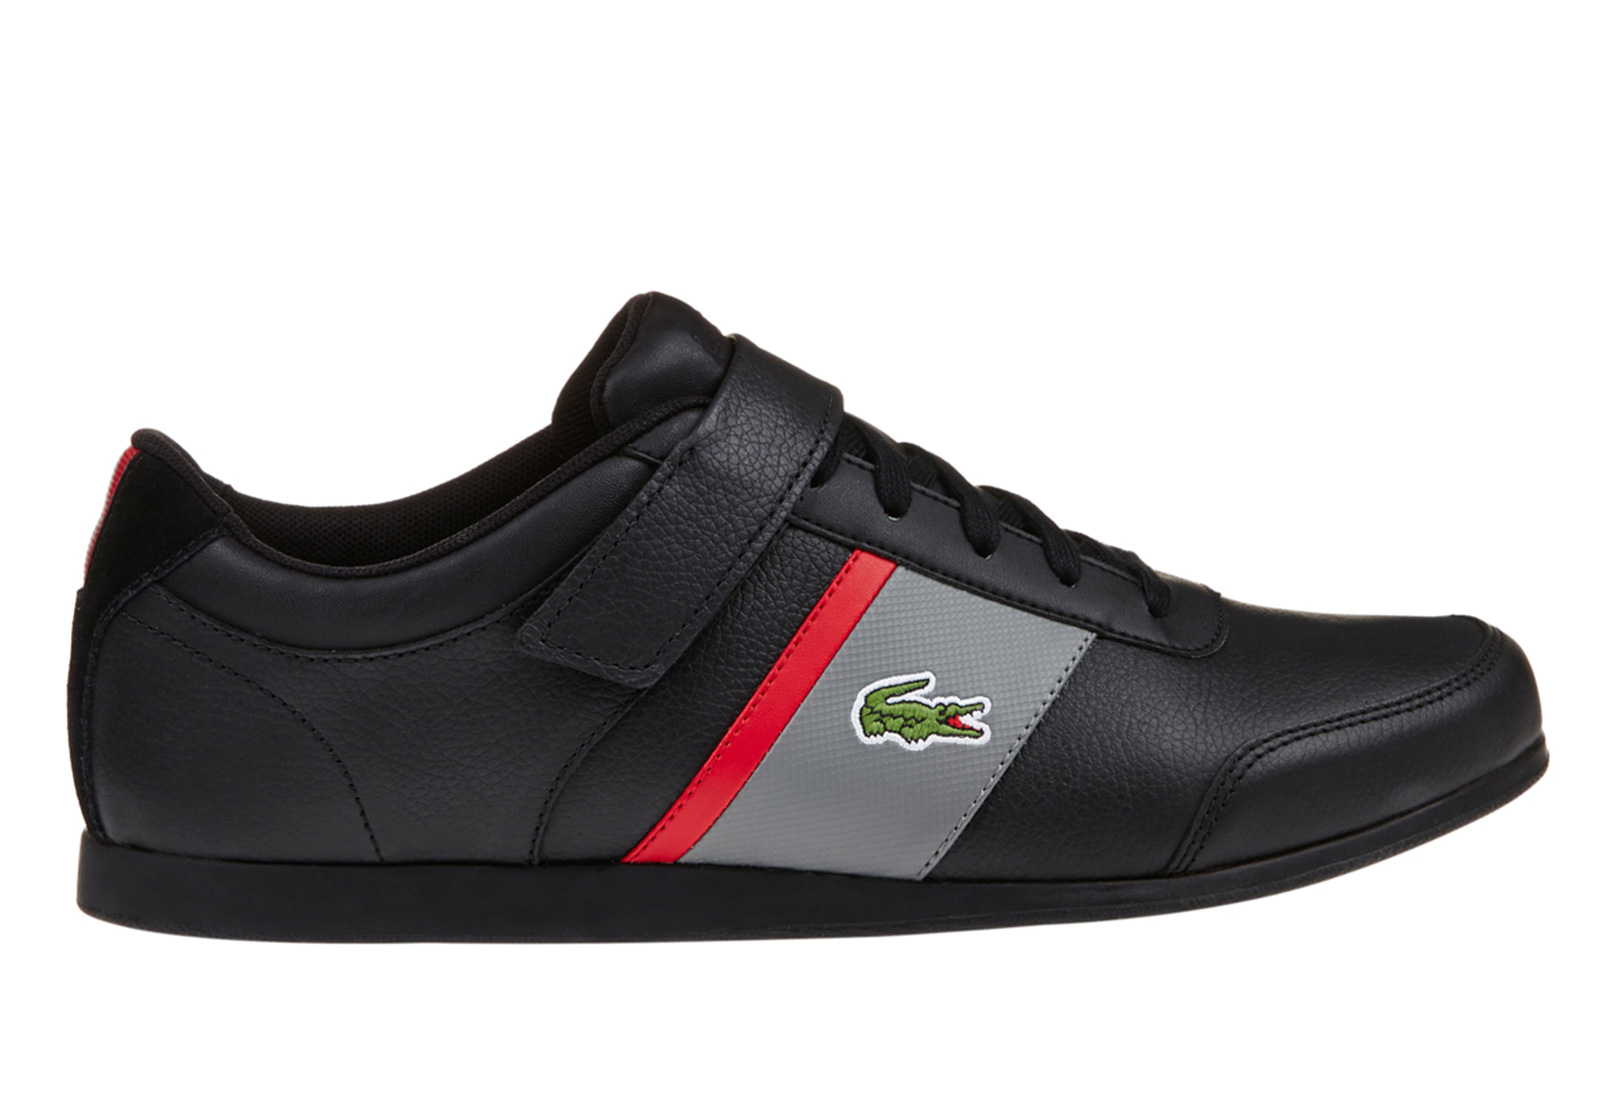 e05615f4582298 Lacoste Shoes - Embrun Urs - zx-spm2020237 - Online shop for ...